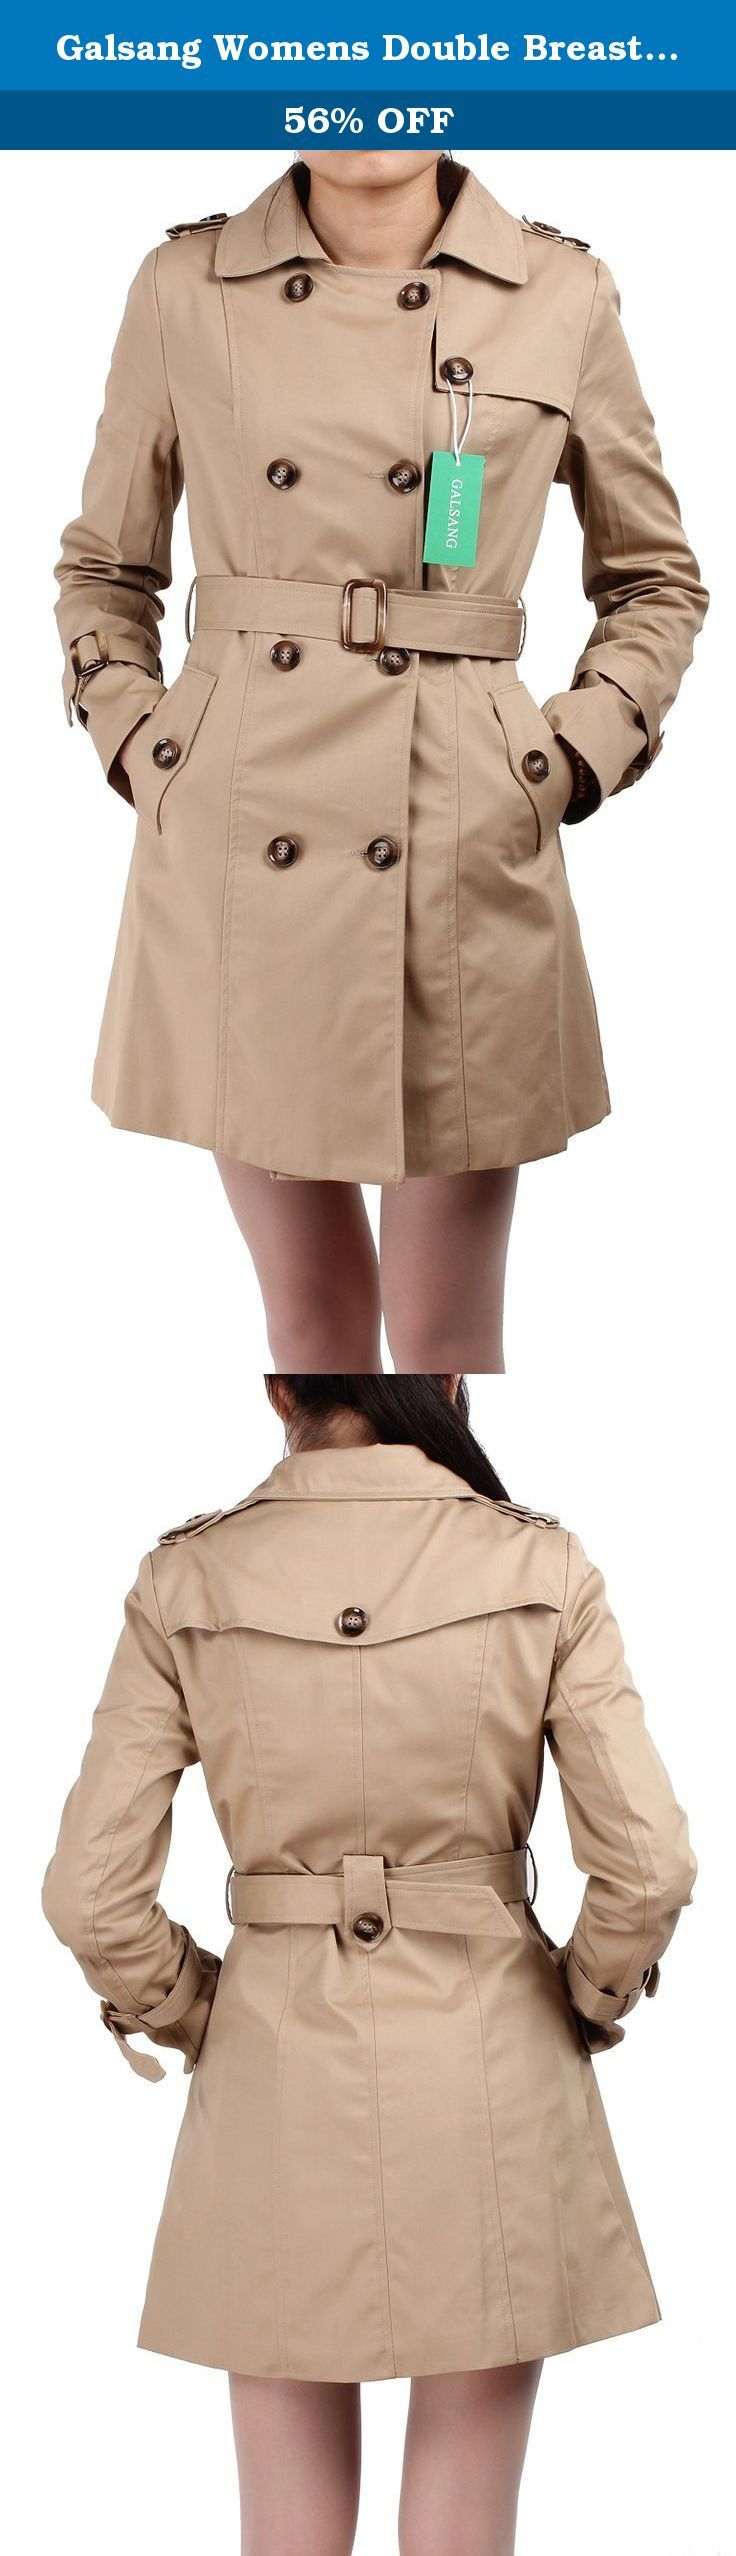 Galsang Womens Double Breasted Belted Trench Coat #B41 (Petite 12, Khaki). Galsang is registered by Blueblue Sky company and is exclusively distributed by Blueblue Sky.Galsang trademark is protected by US Trademark Law. If you are not satisfied, please don't leave us negative or neutral feedback right away. Please contact us via email. We promise to provide 100% fine customer service and try best to make every customer get good mood with fine shopping experience here.